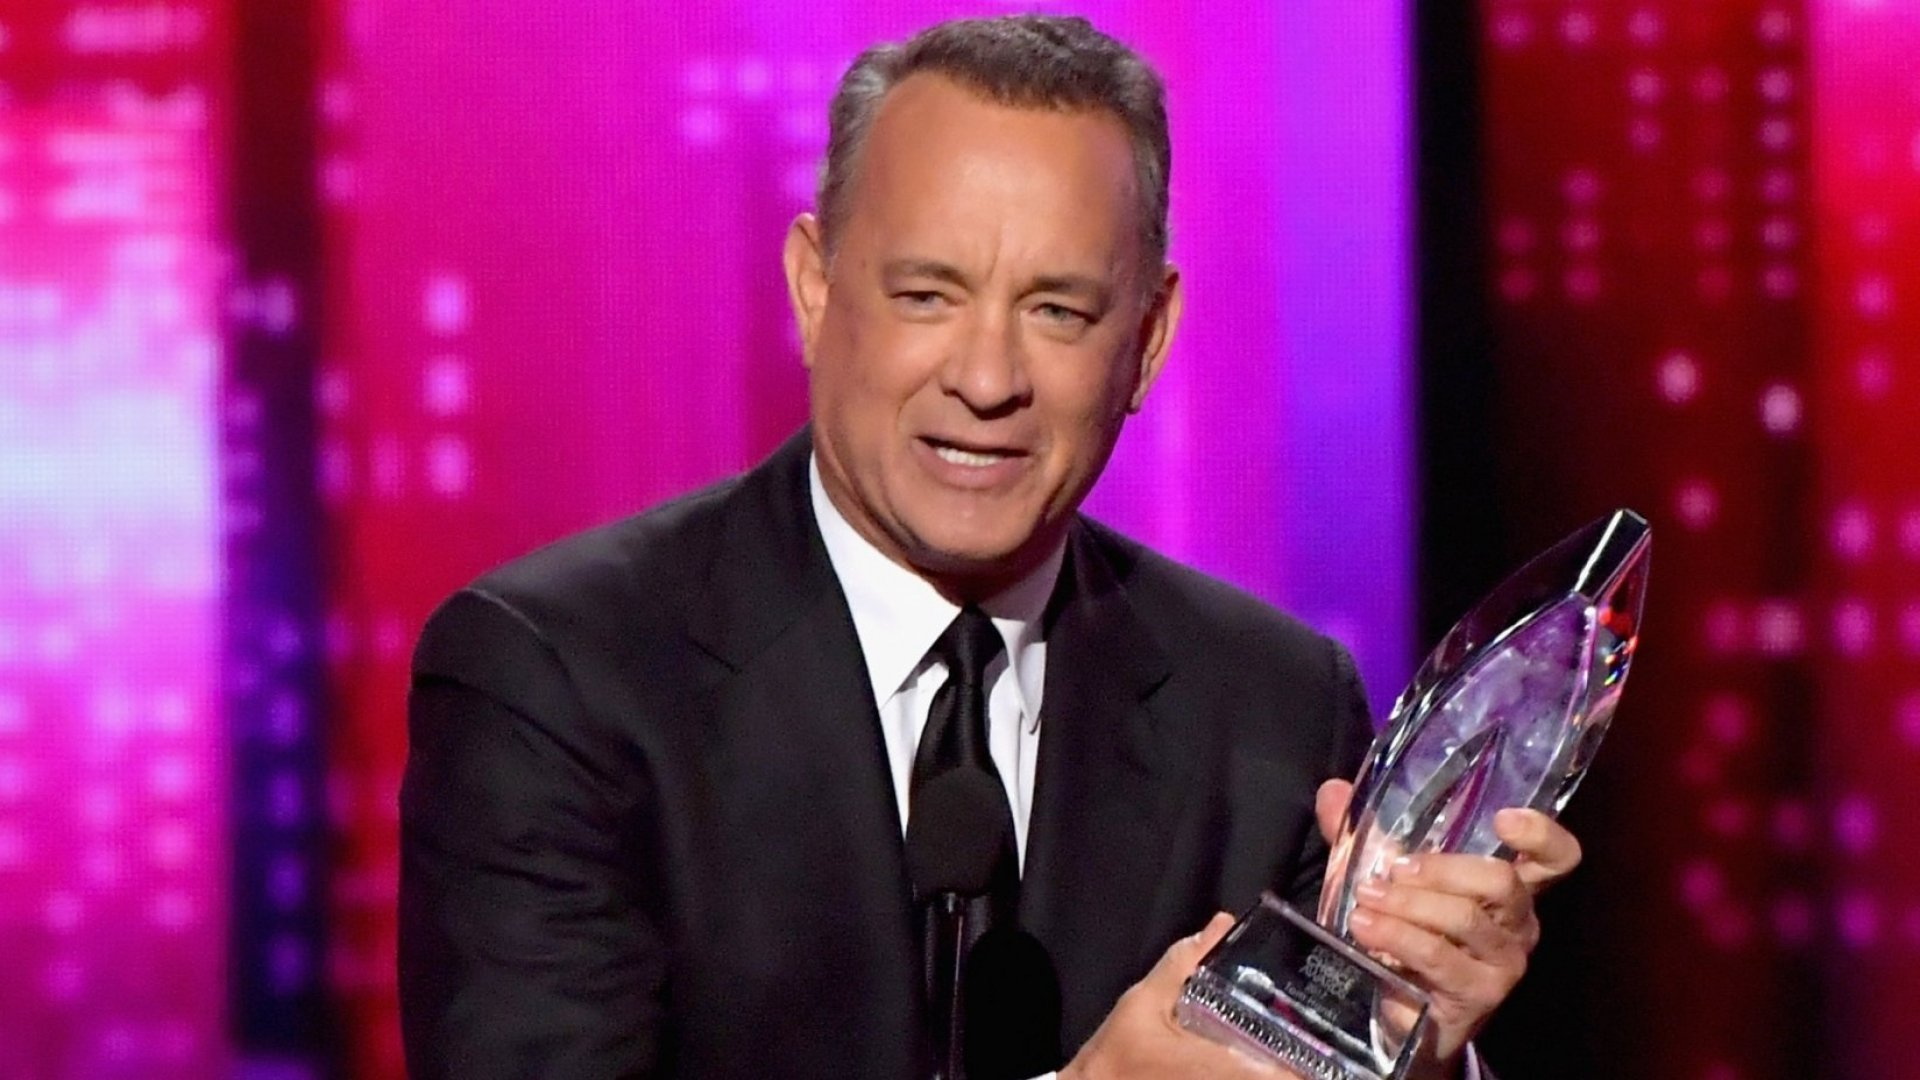 In Only 36 Seconds, Tom Hanks Outlined the Single Greatest Thing to Do for Your Career